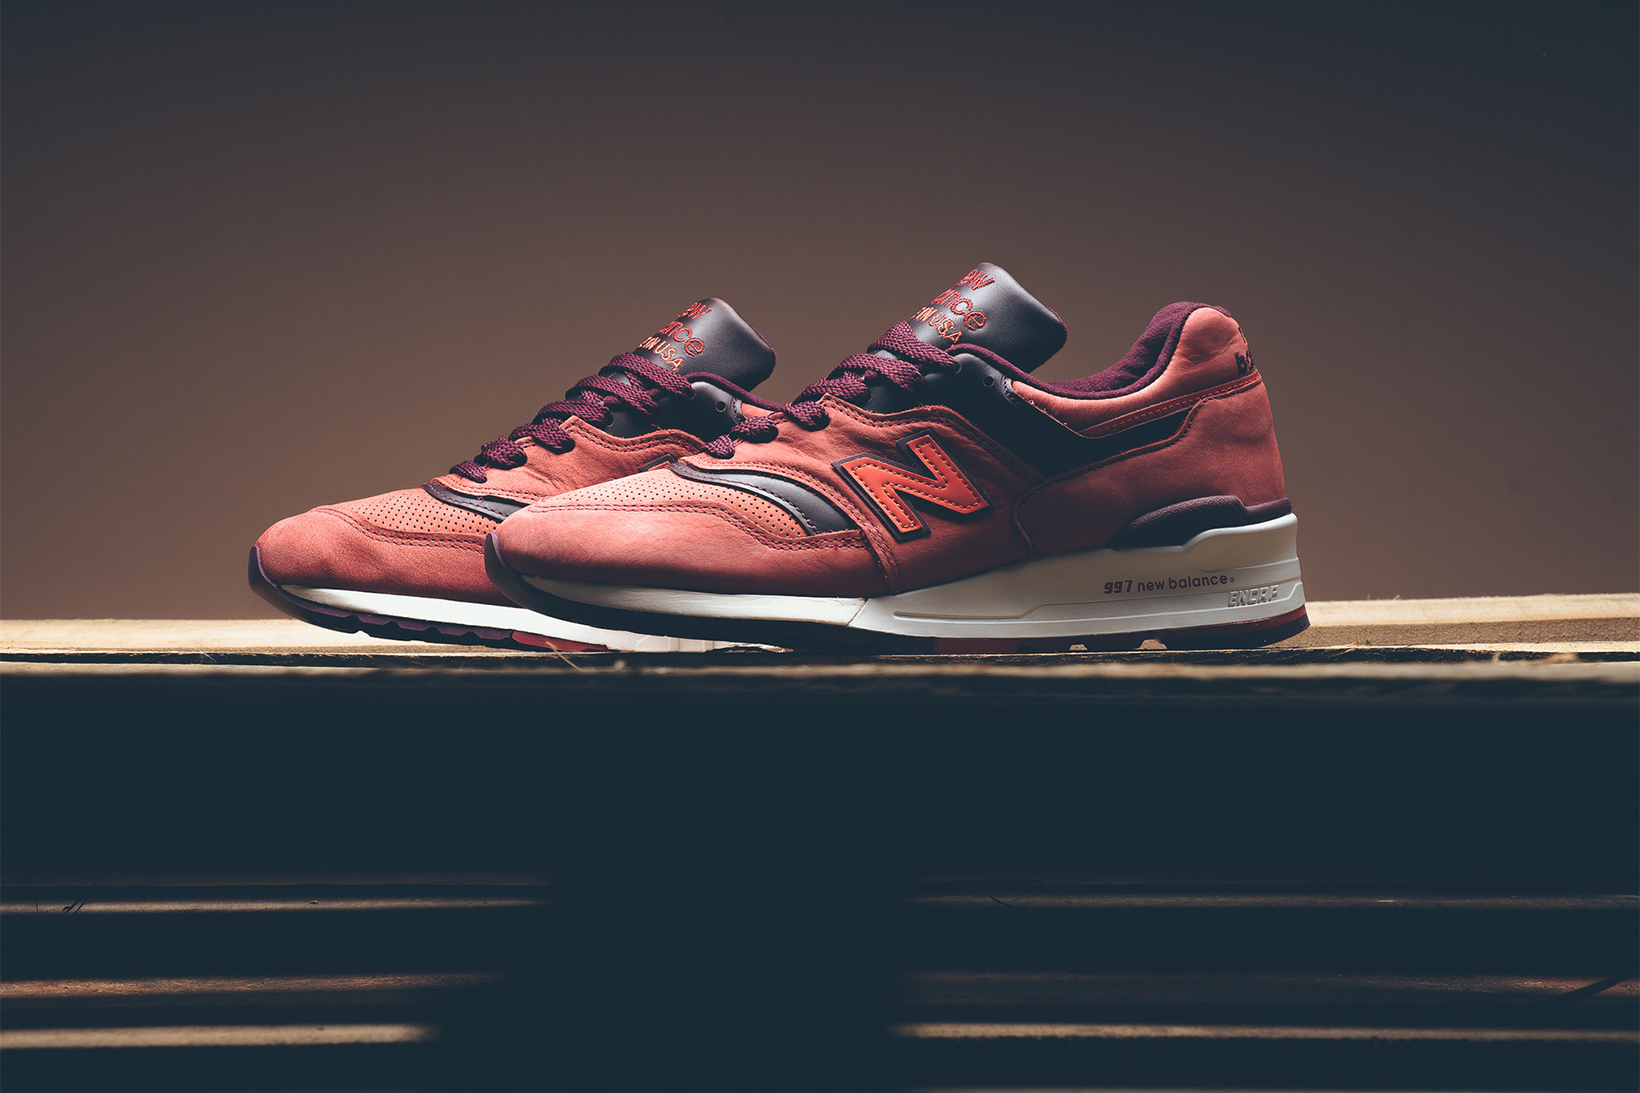 Horween New Balance 997 Red Clay